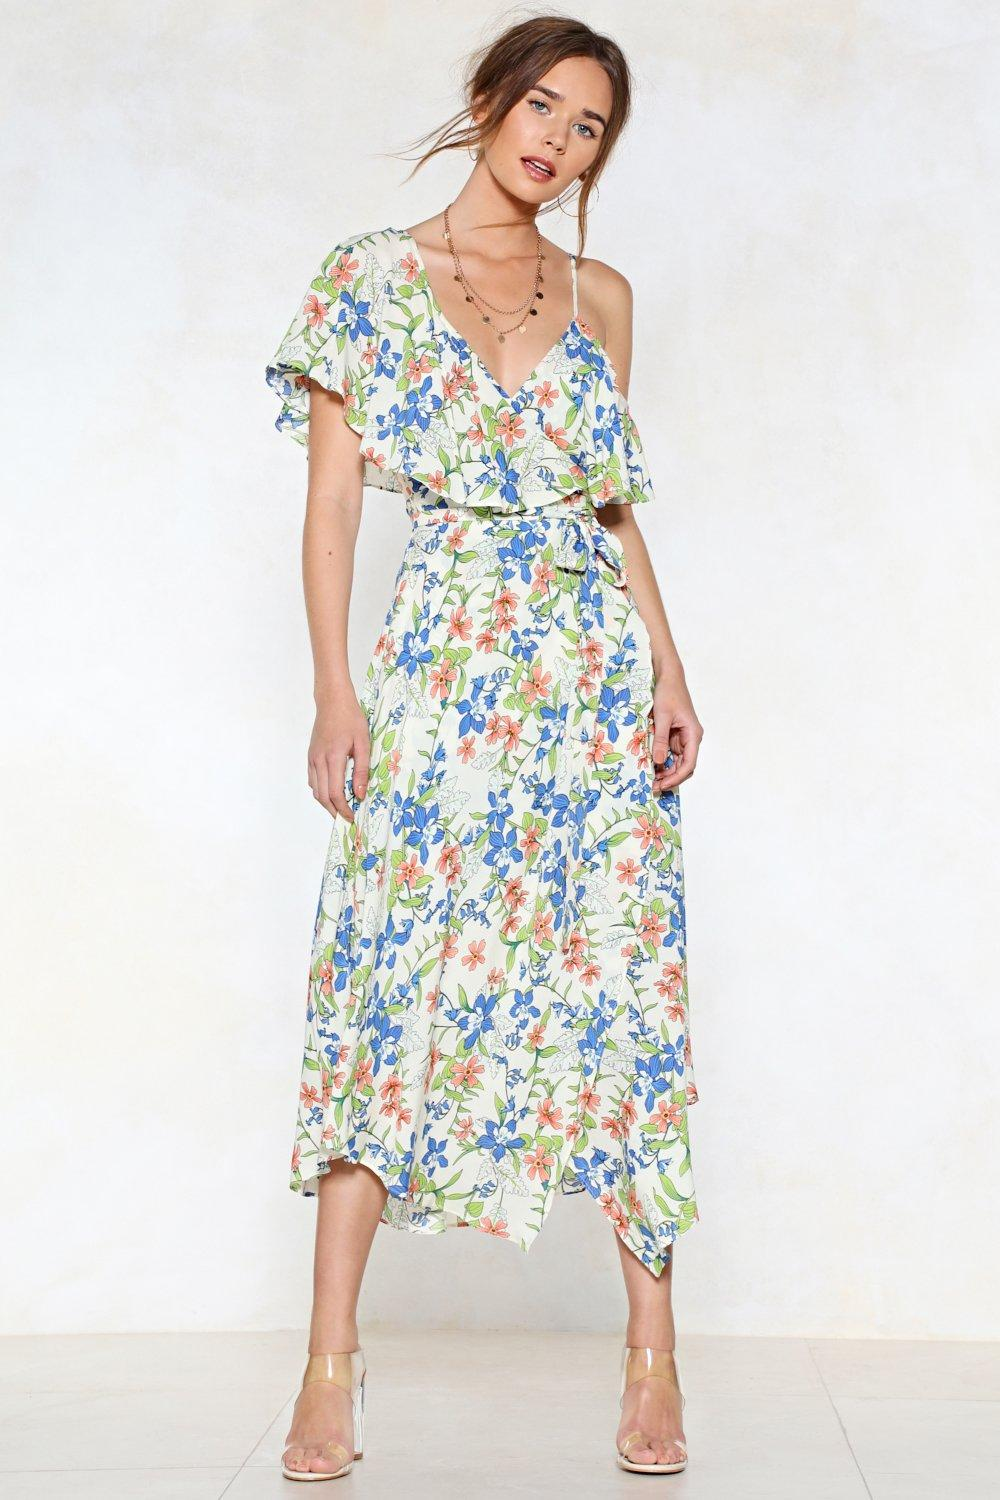 Bloom Again Floral Dress Shop Clothes At Nasty Gal